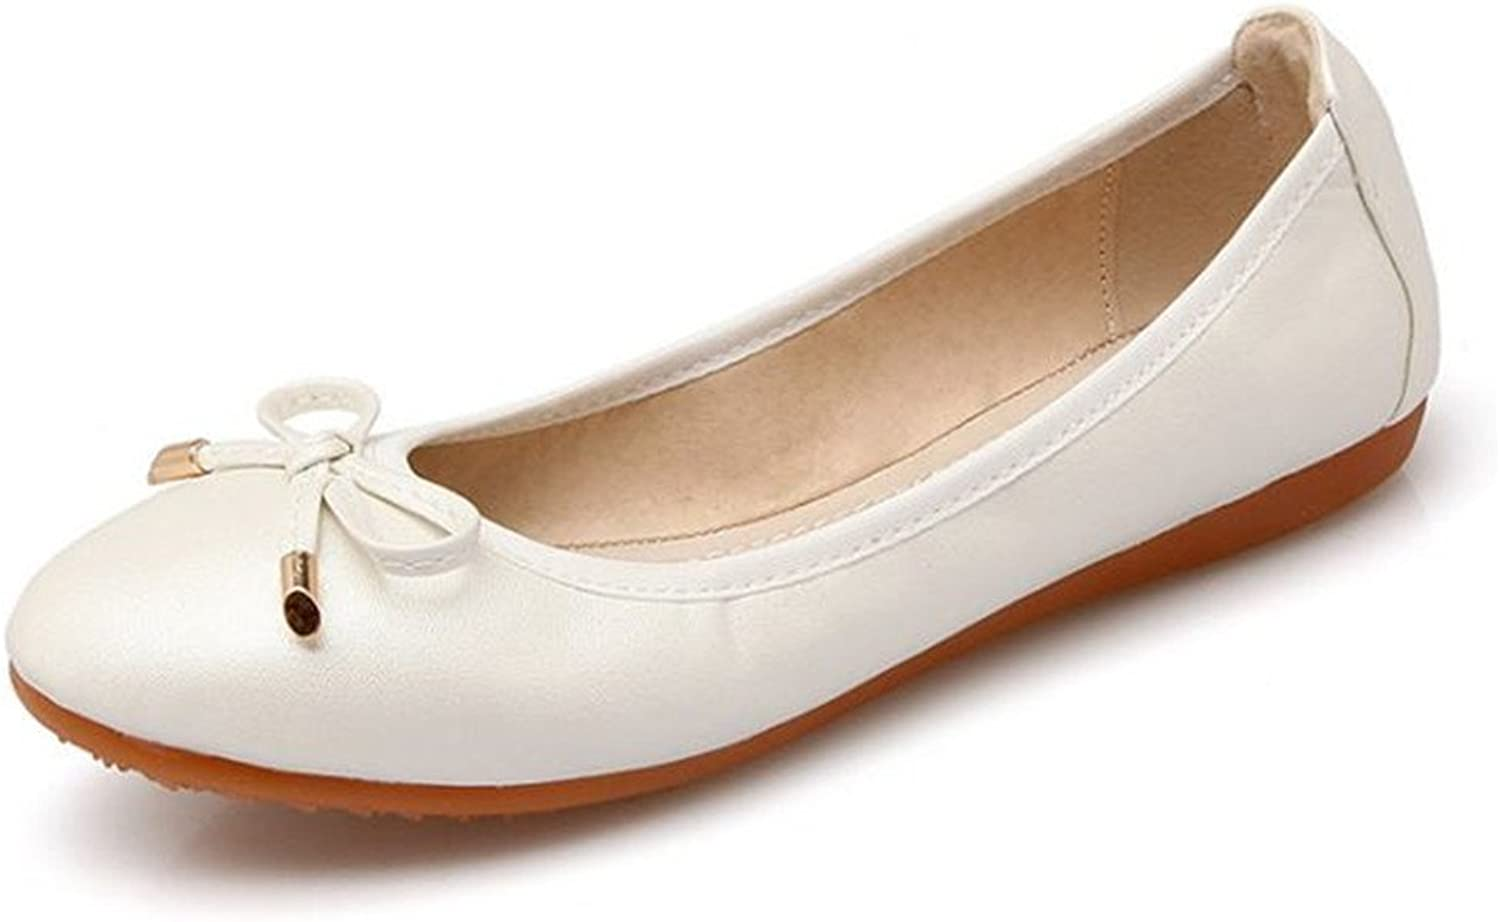 Women's Casual Flats Ballet Fashion shoes Faux Leather Bow tie